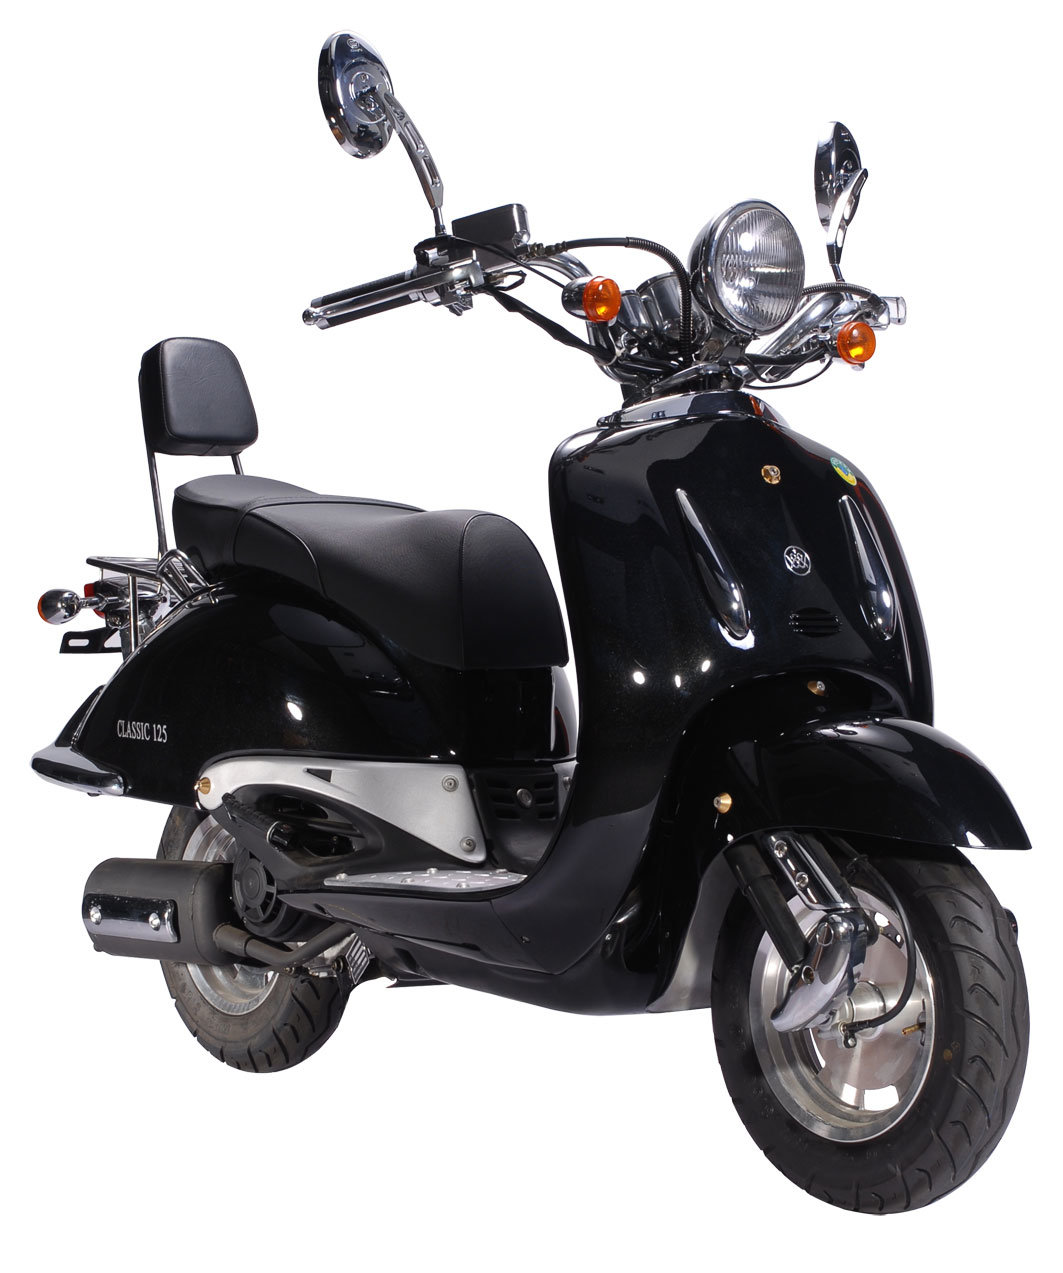 KINGS MOTOR BIKES,MOTORIZED BICYCLE,MOTORIZED BIKES